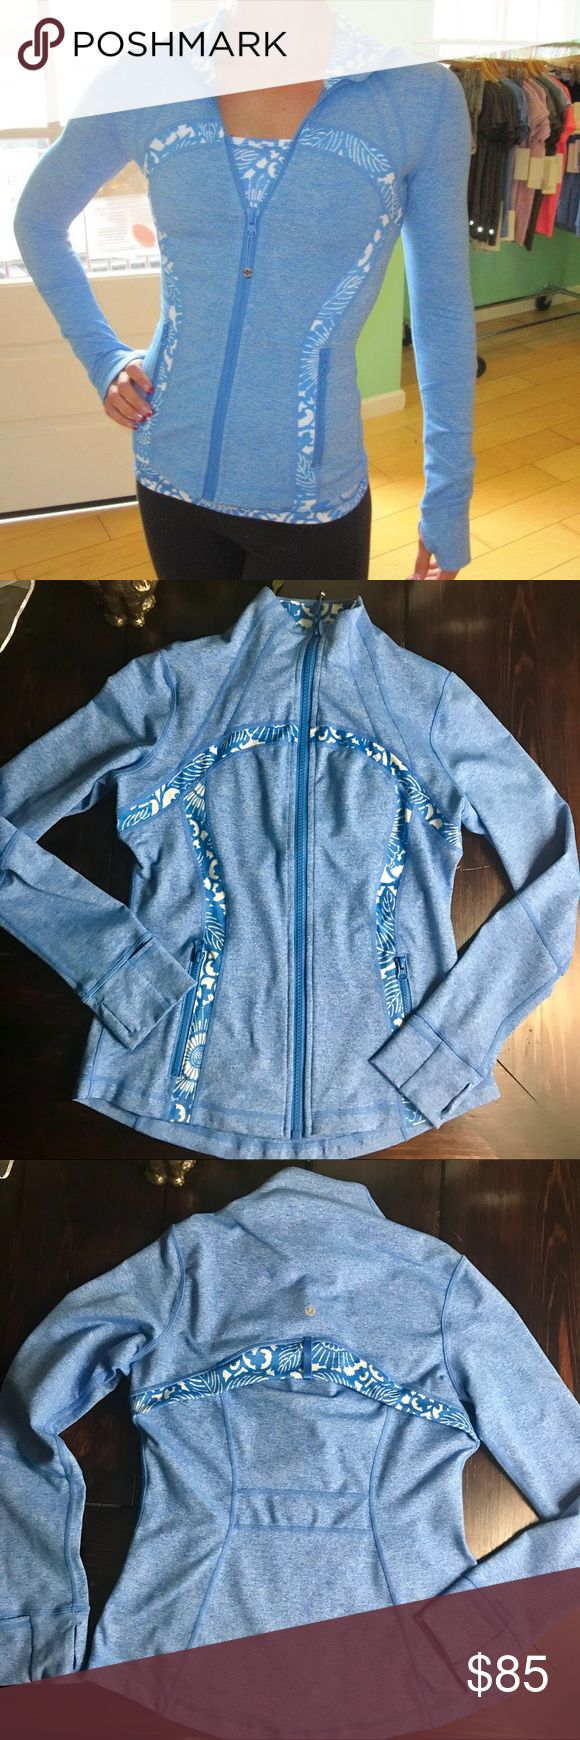 Lululemon Define Jacket in Blue Beachy floral Lululemon Define Jacket in Blue Porcelain Beachy floral.  In perfect condition.  It feels and looks brand new.   A great spring jacket!!! Size 10 lululemon athletica Jackets & Coats